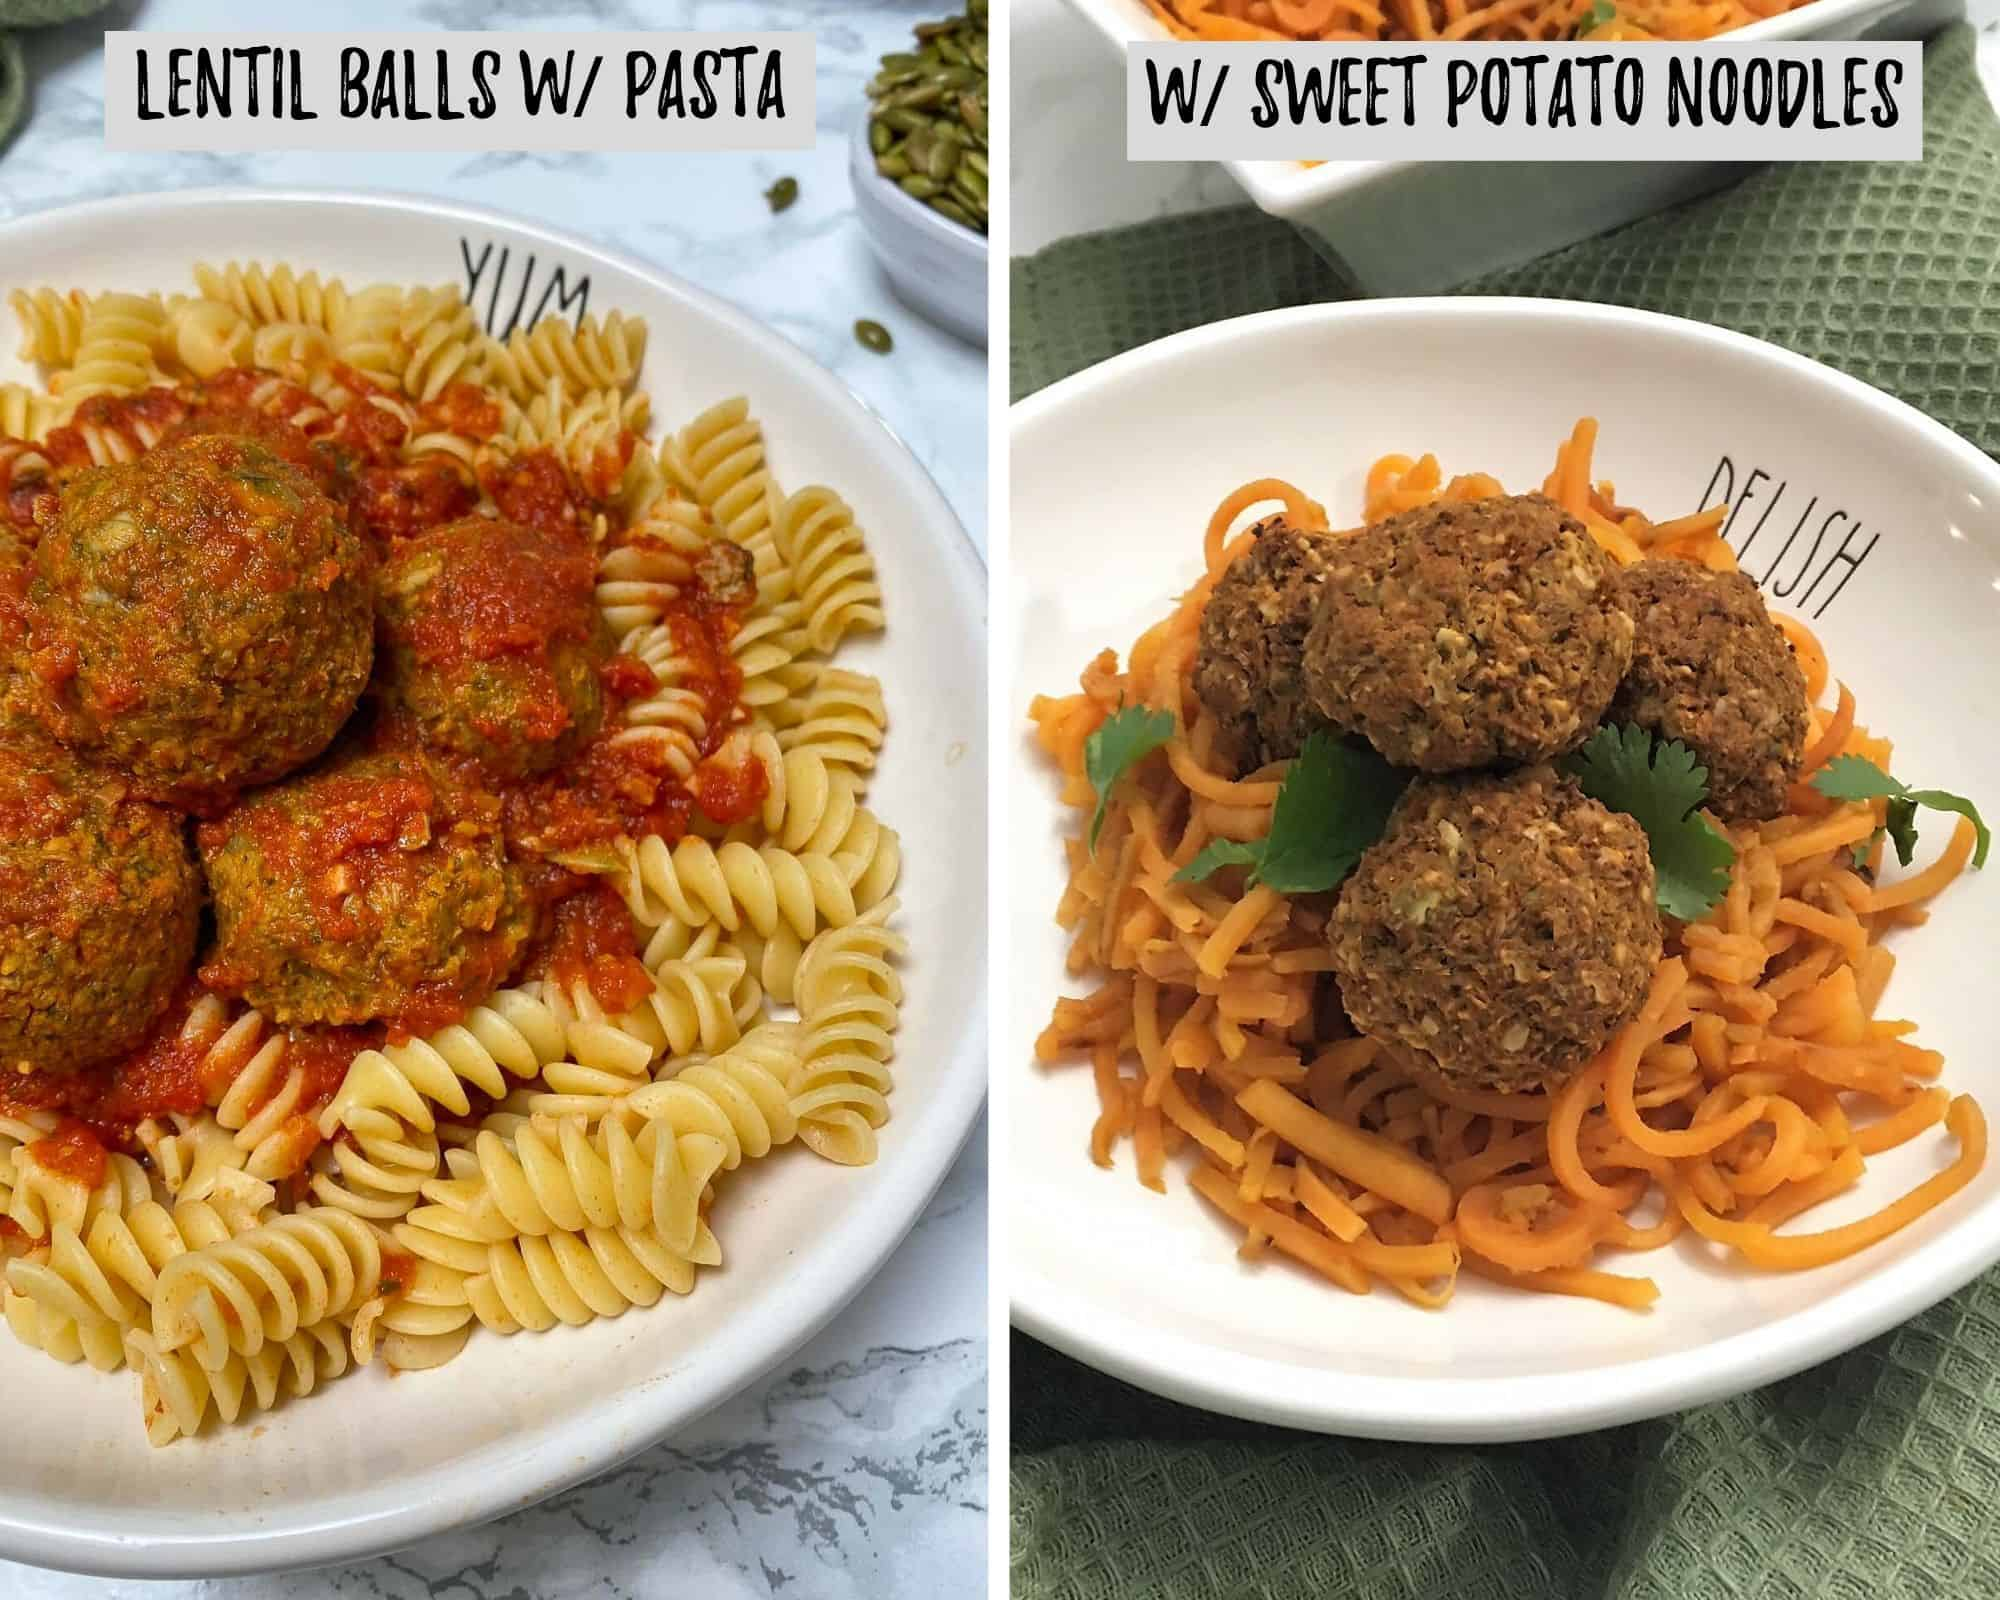 lentil balls with pasta and sweet potato noodles in bowl